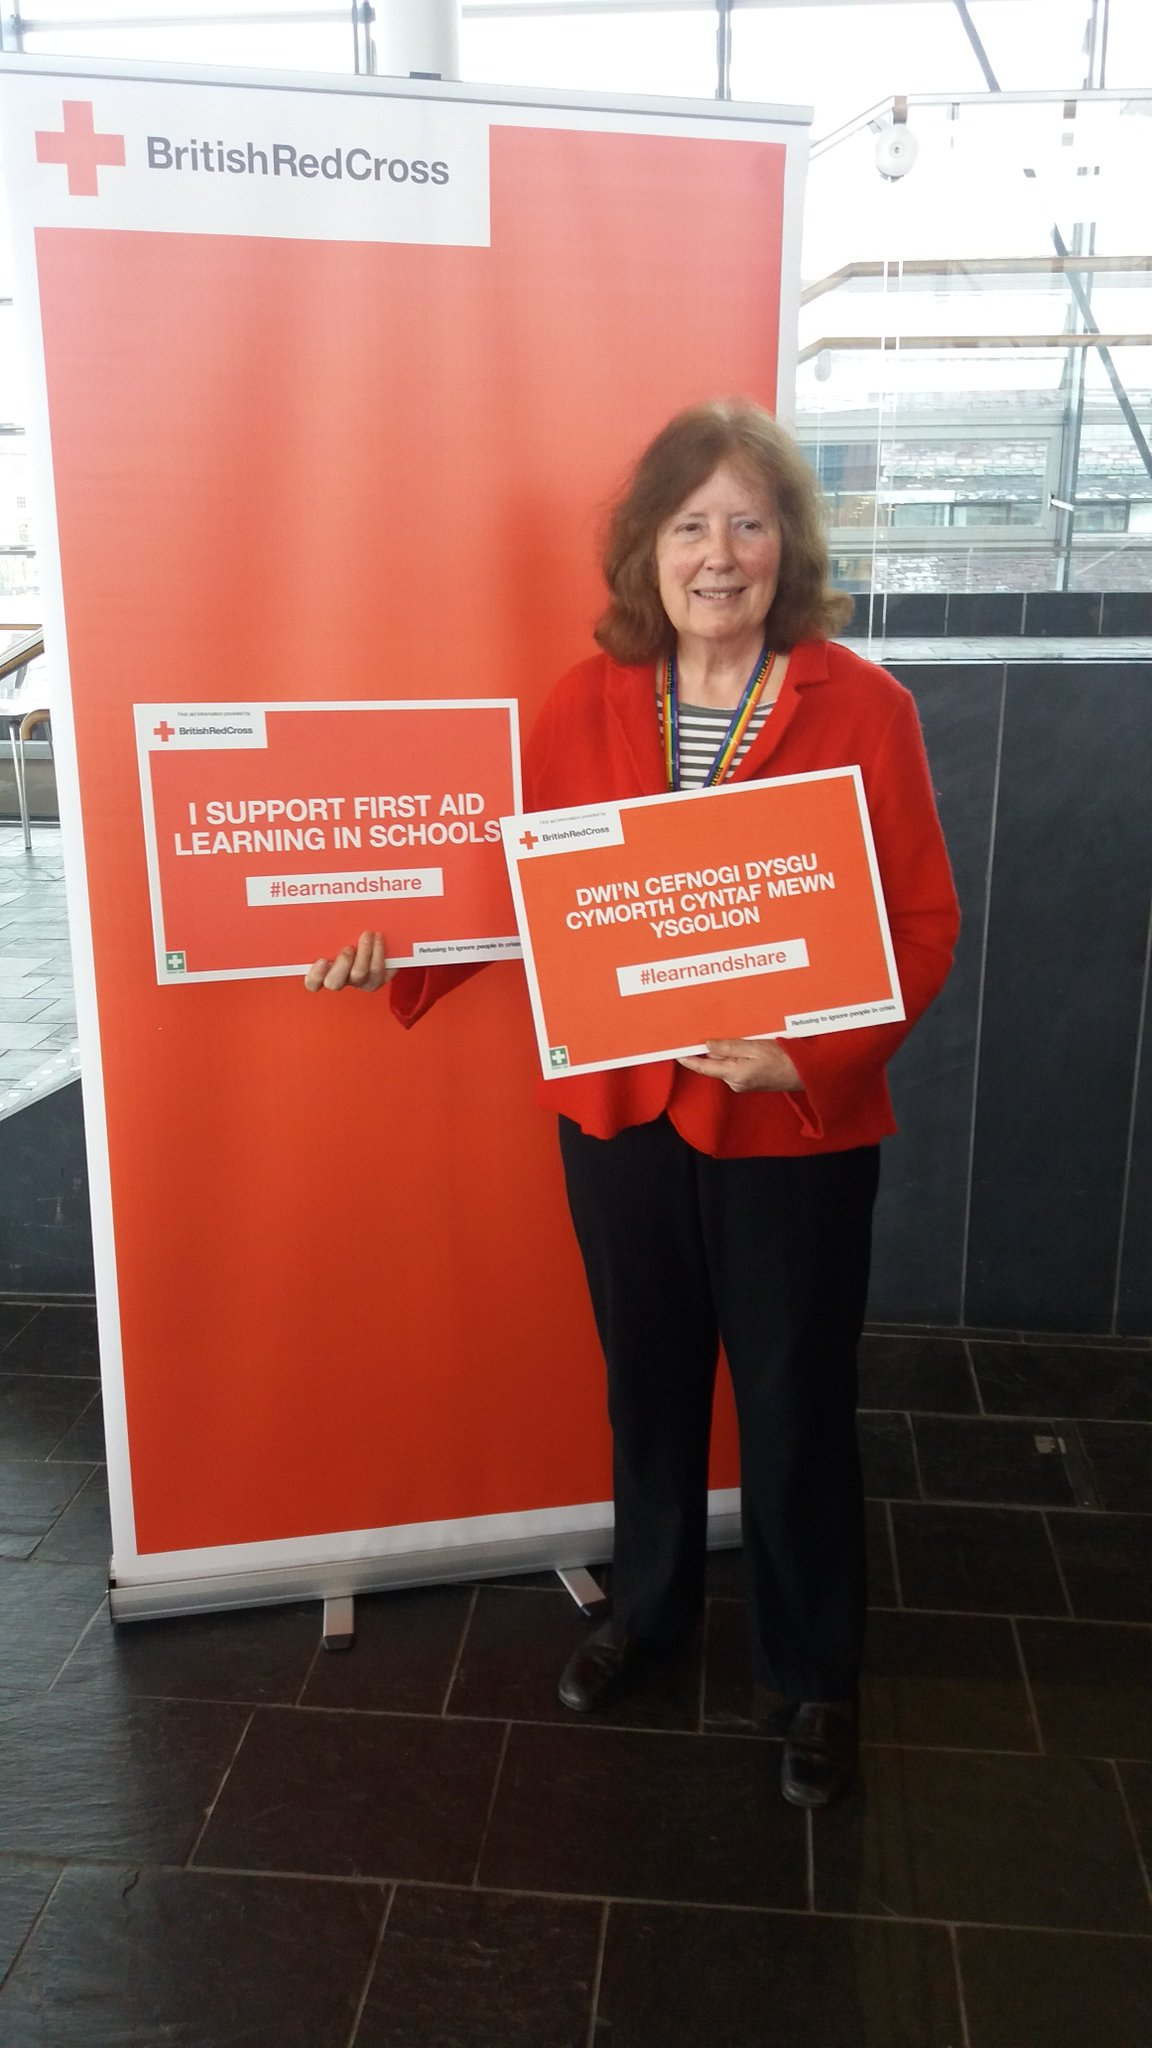 @JulieMorganLAB supports the @BritishRedCross and @CardiffYC first aid event at the Senedd. #learnands#learnandshare https://t.co/cwFMUHlS4d